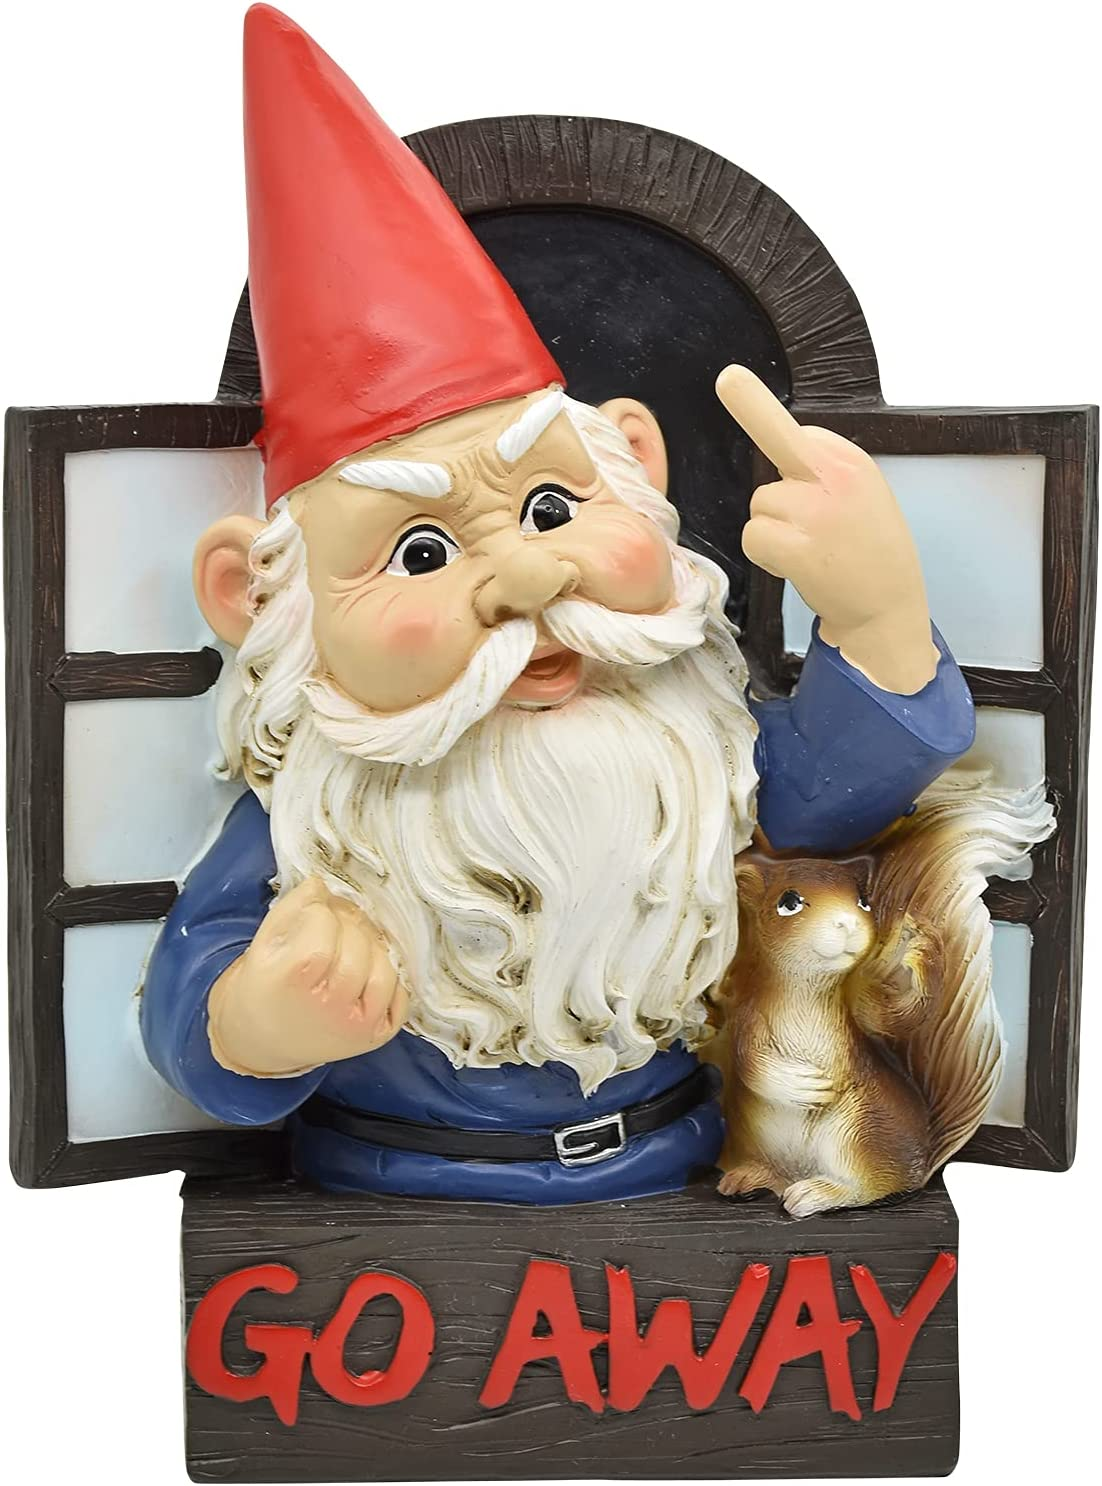 Whimsical Grumpy Gnome Statue Go Away Rude Garden Gnome and Squirrel at The Window Flipping Off Guests Wall Hanging Plaque Decor Funny Naughty Finger Gnome Figurine - 8